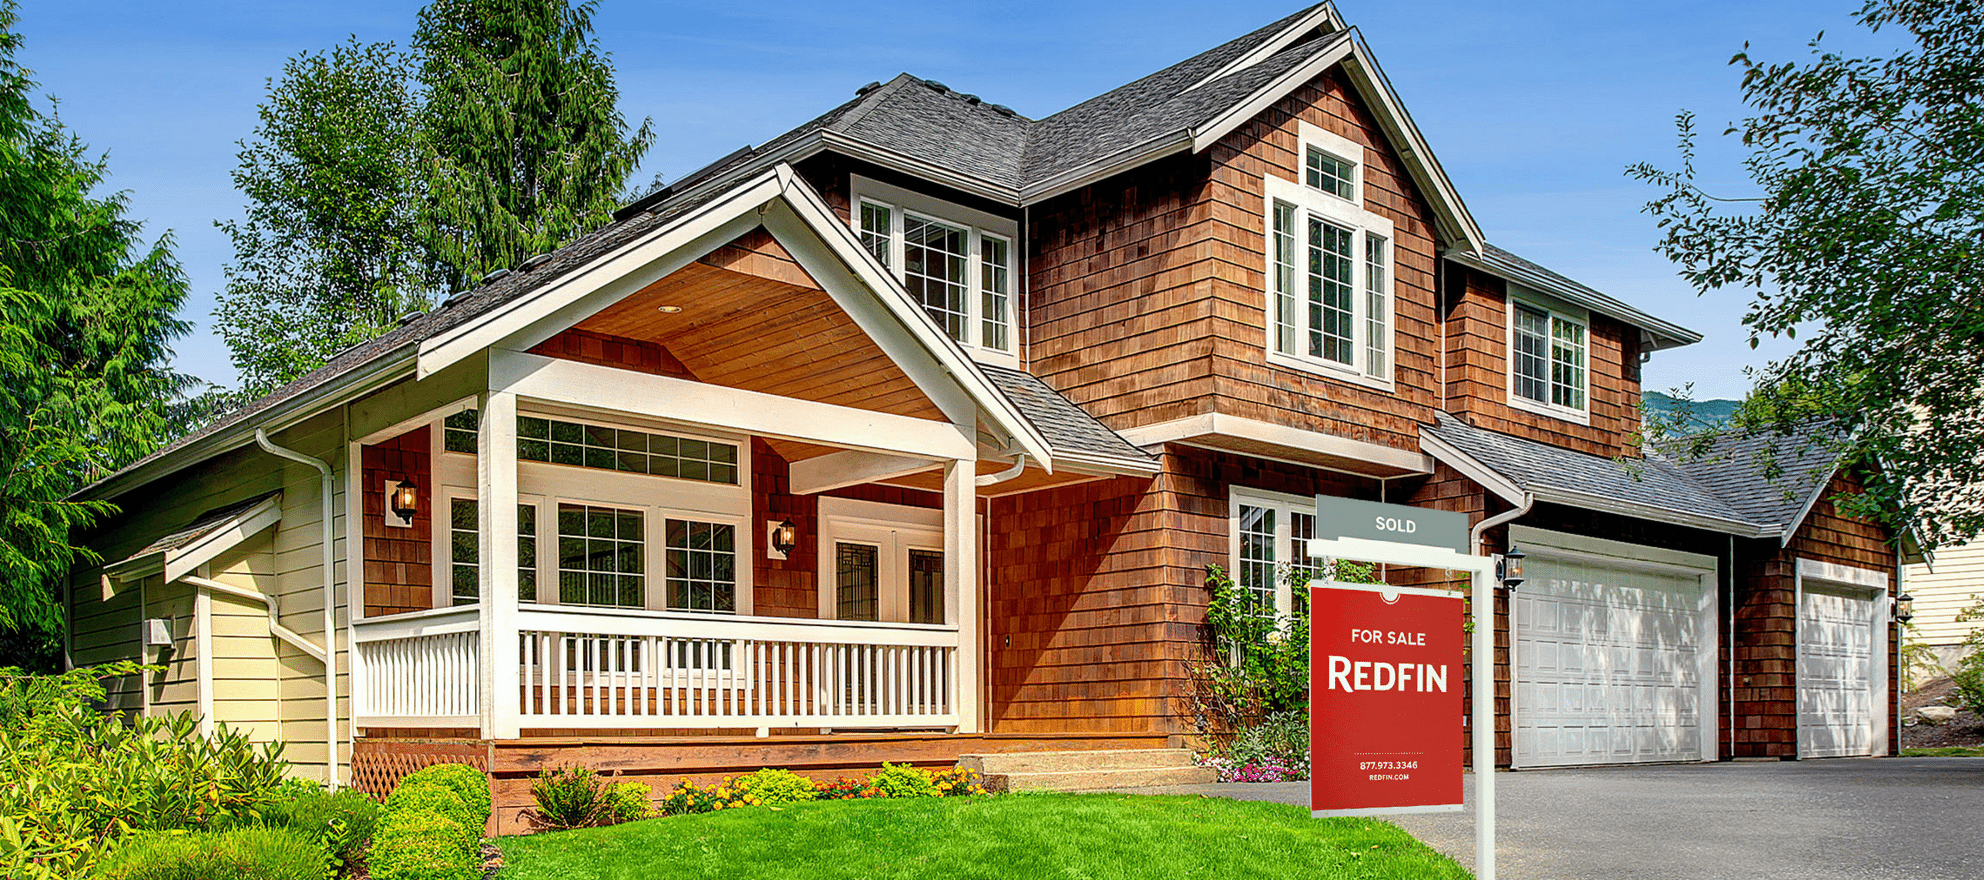 Redfin unveils new estimate tool for off-market homes